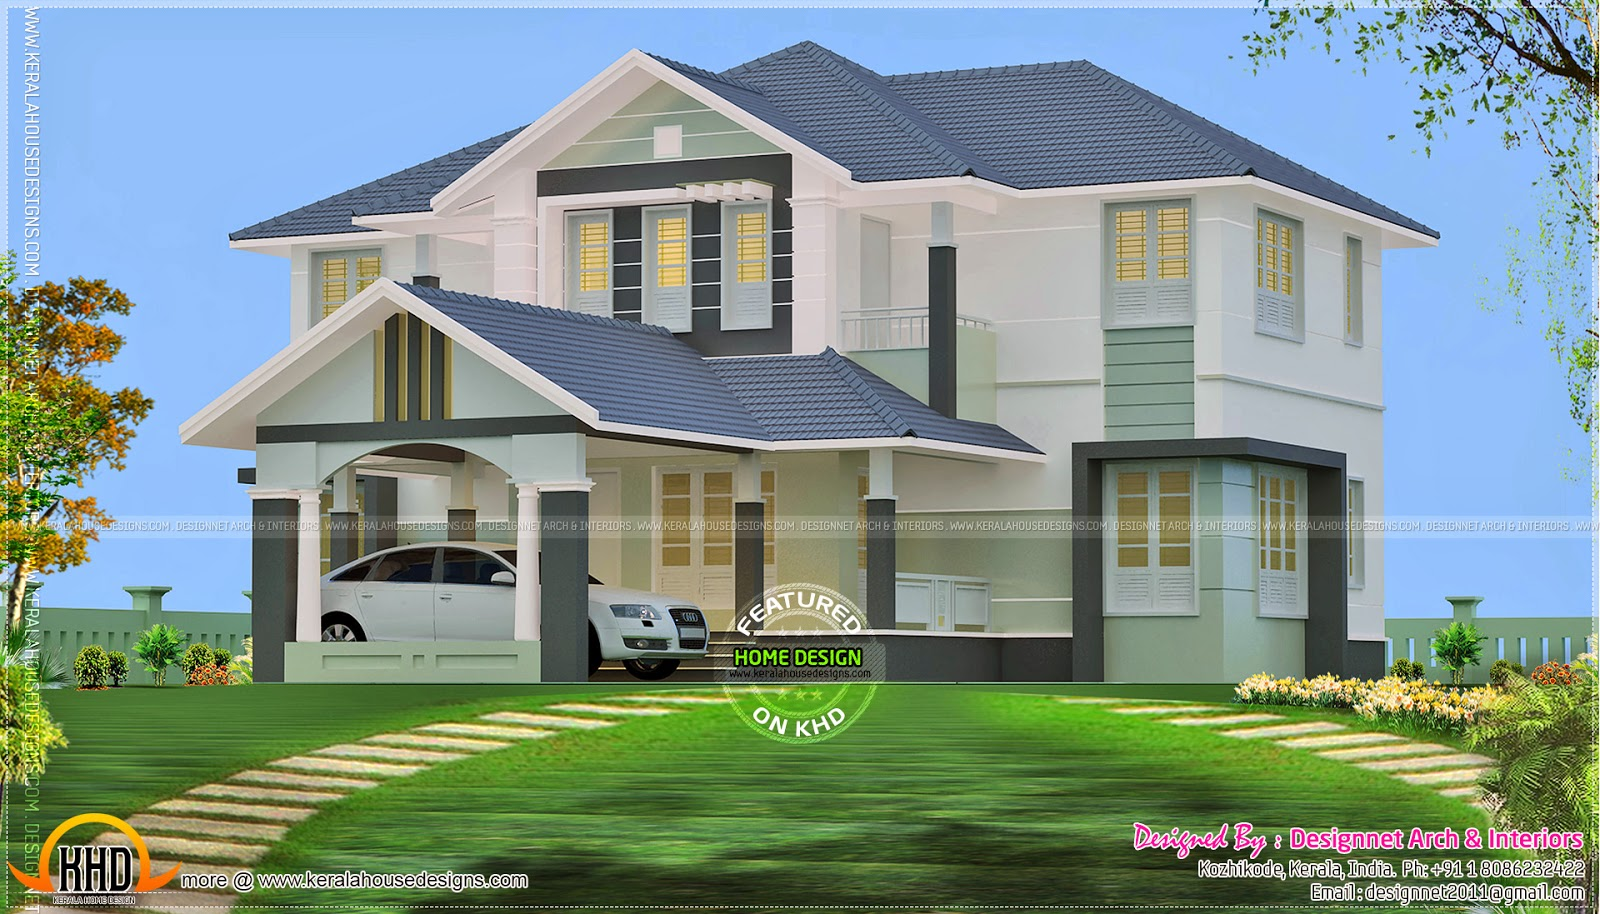 2610 Square Feet House With 4 Bedrooms Kerala Home